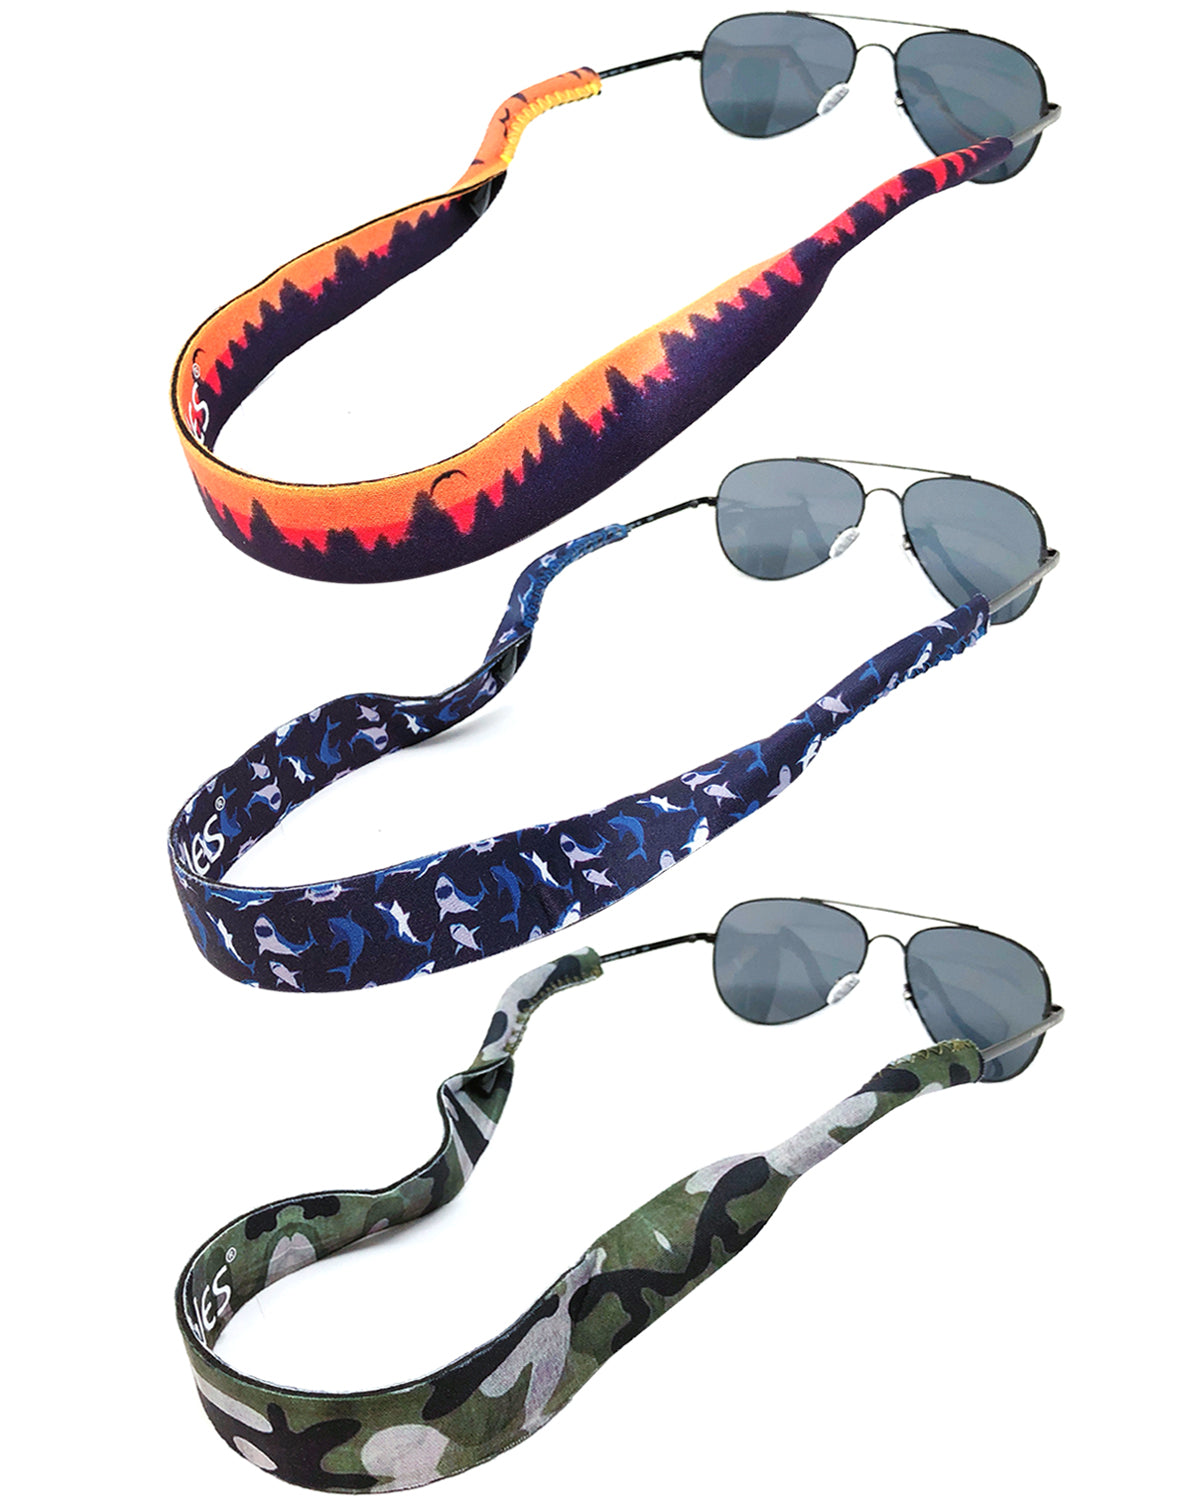 Wrapables Adjustable Eyewear Retainer, Sunglass Strap with Neoprene Floating Material for Sports and Outdoors (Set of 3)